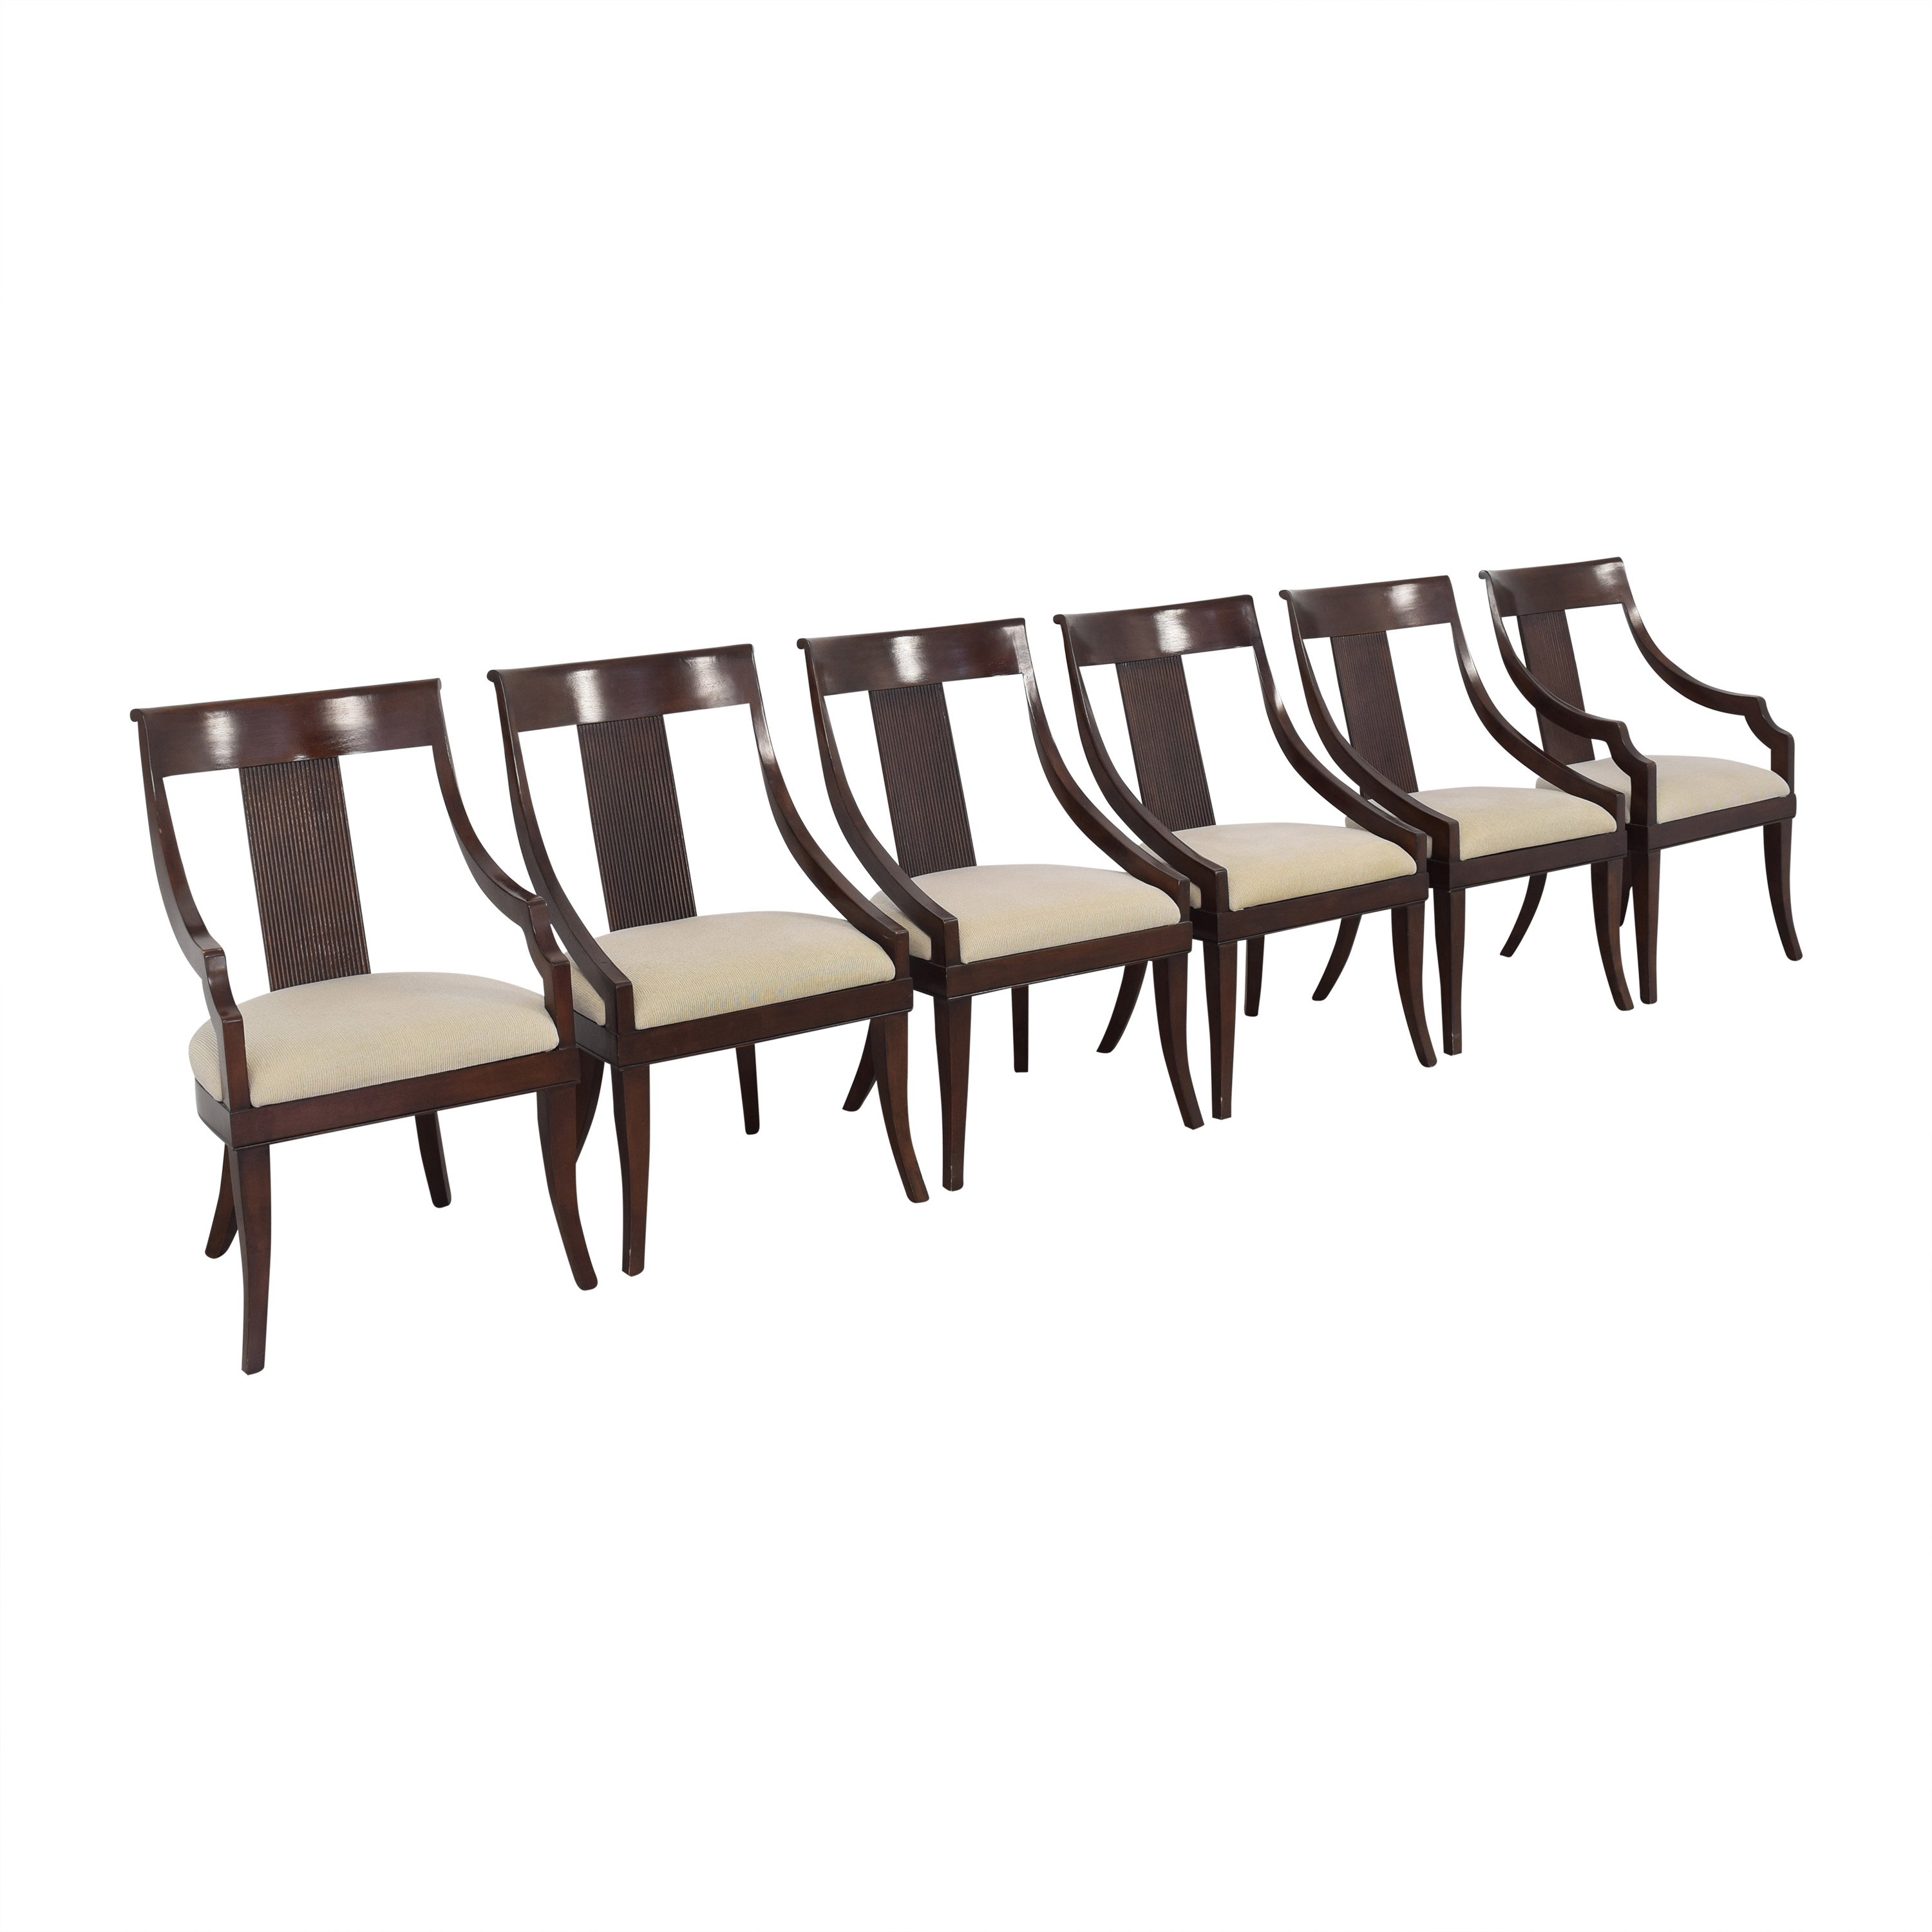 Macy's Macy's Upholstered Dining Chairs discount